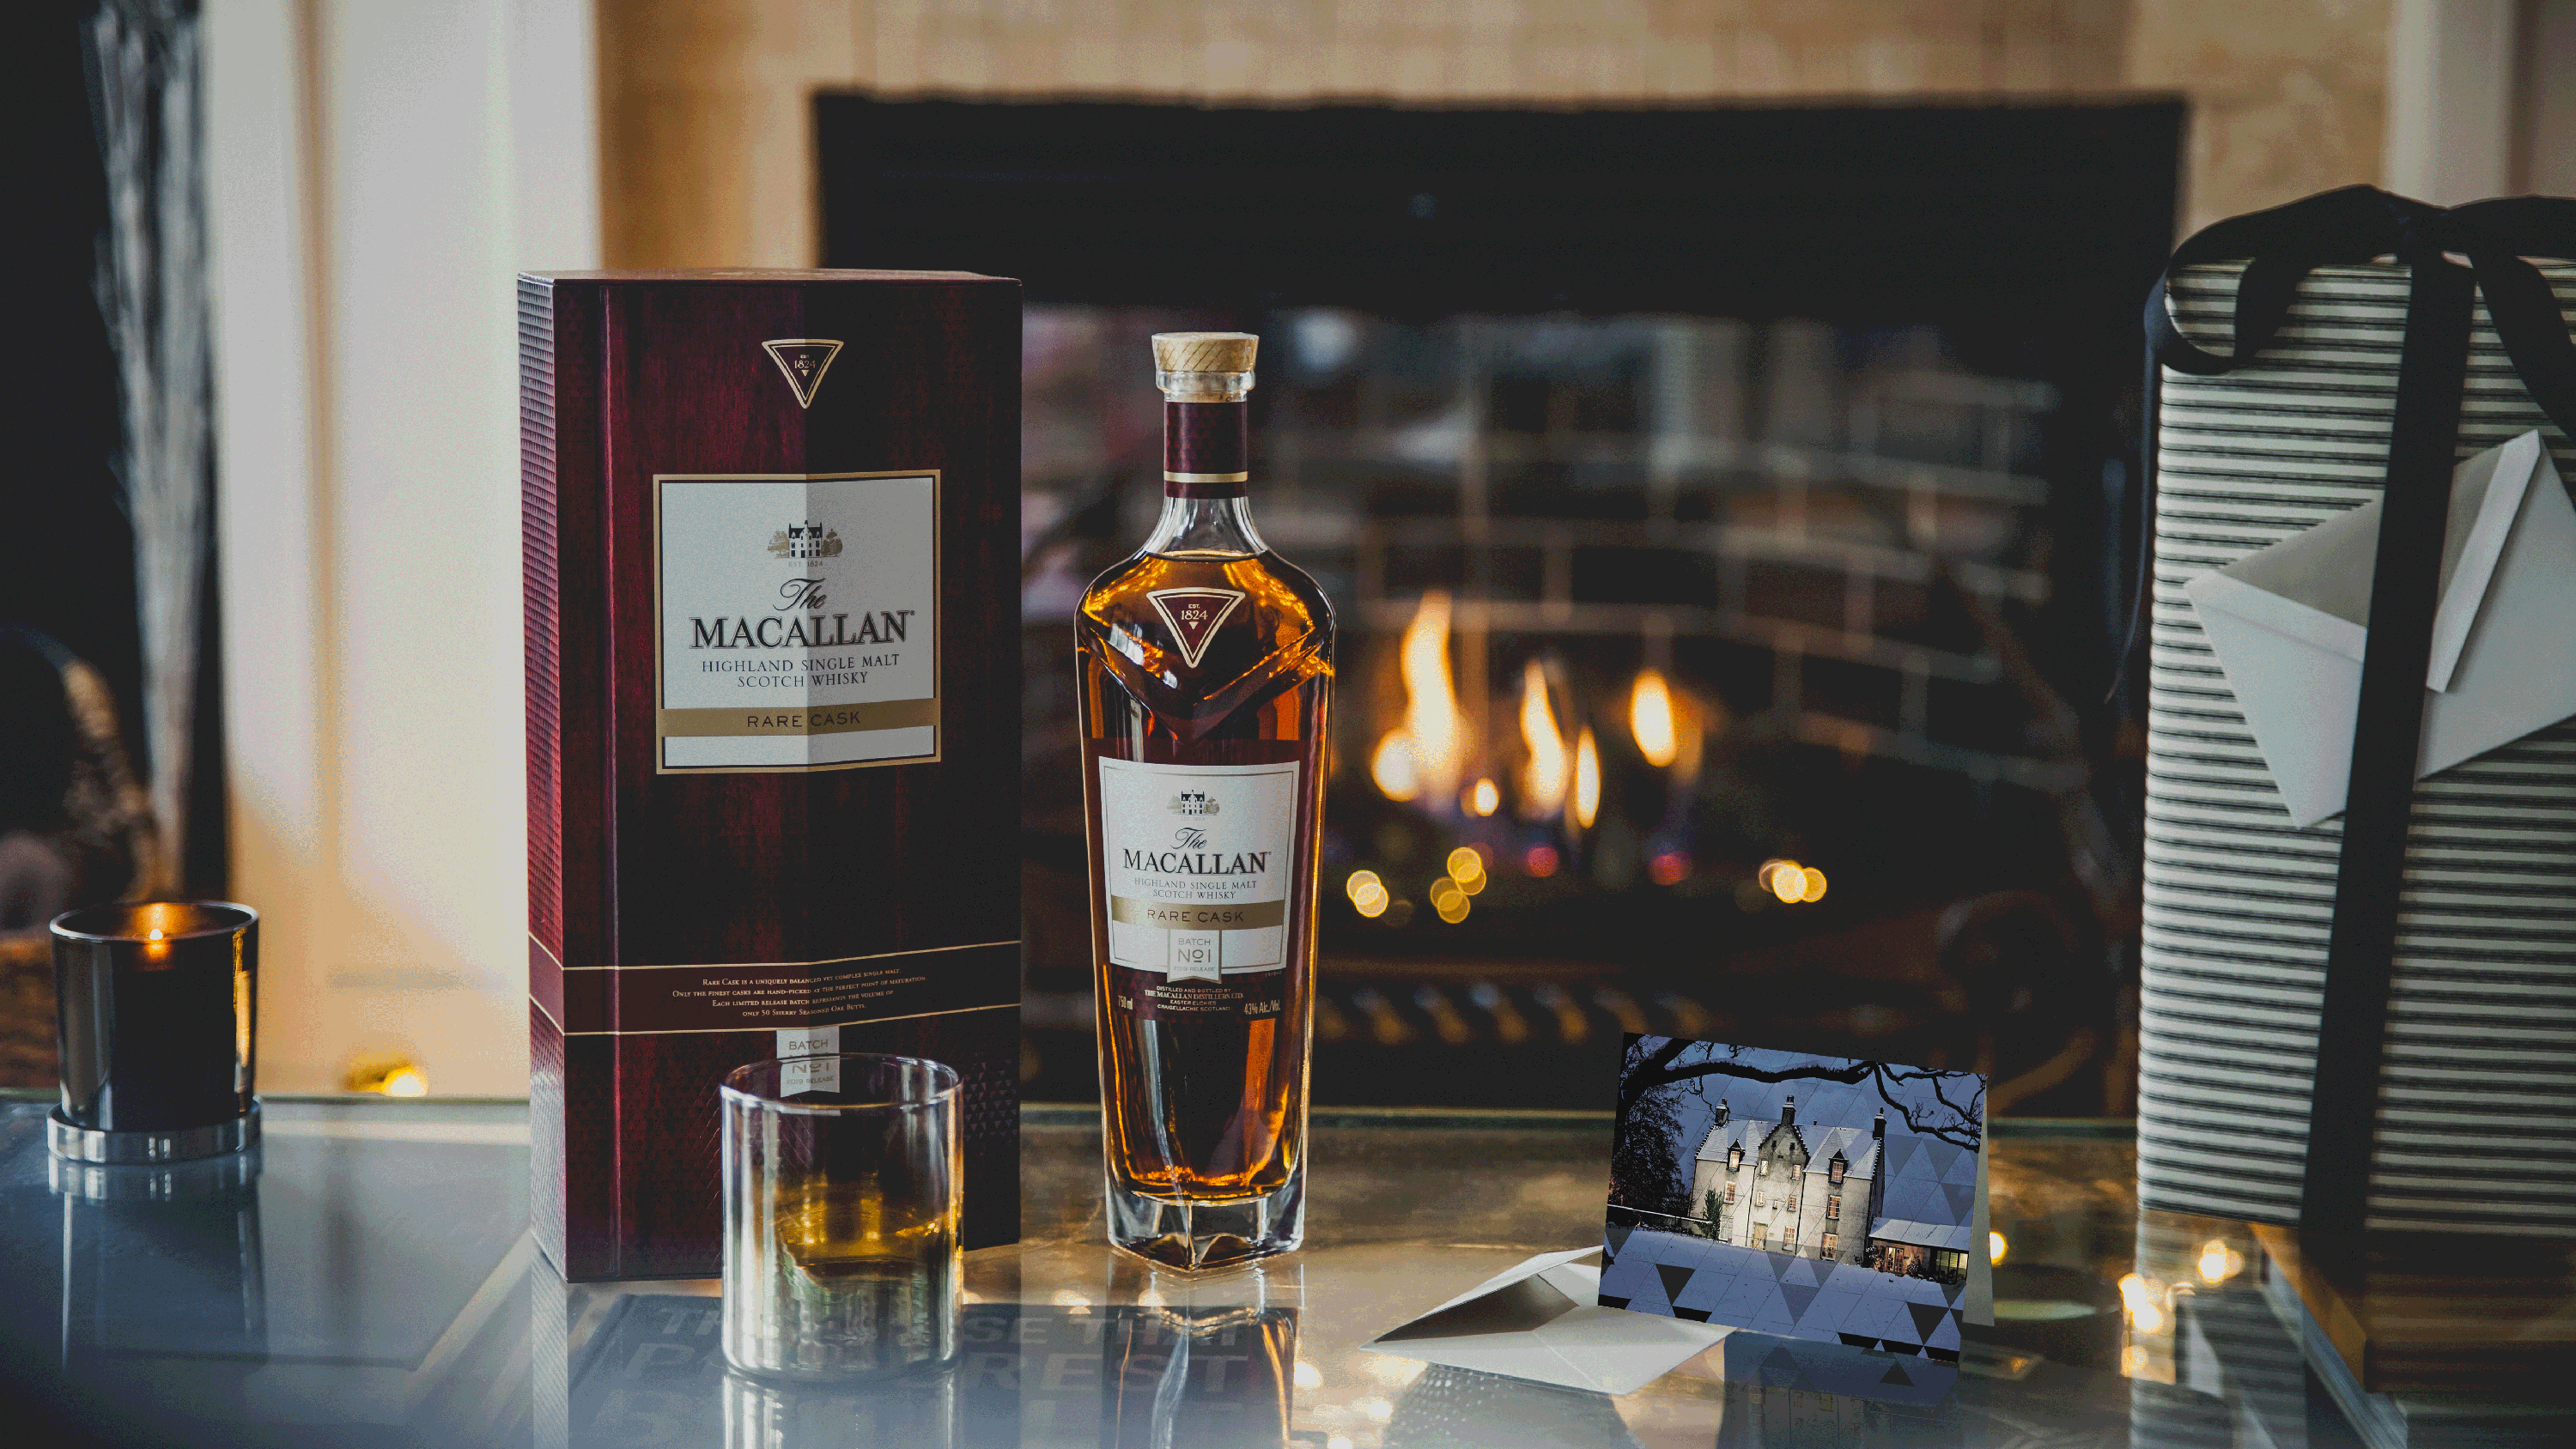 The Macallan Launches Gratitude Charitable Campaign To Help Independent Restaurants